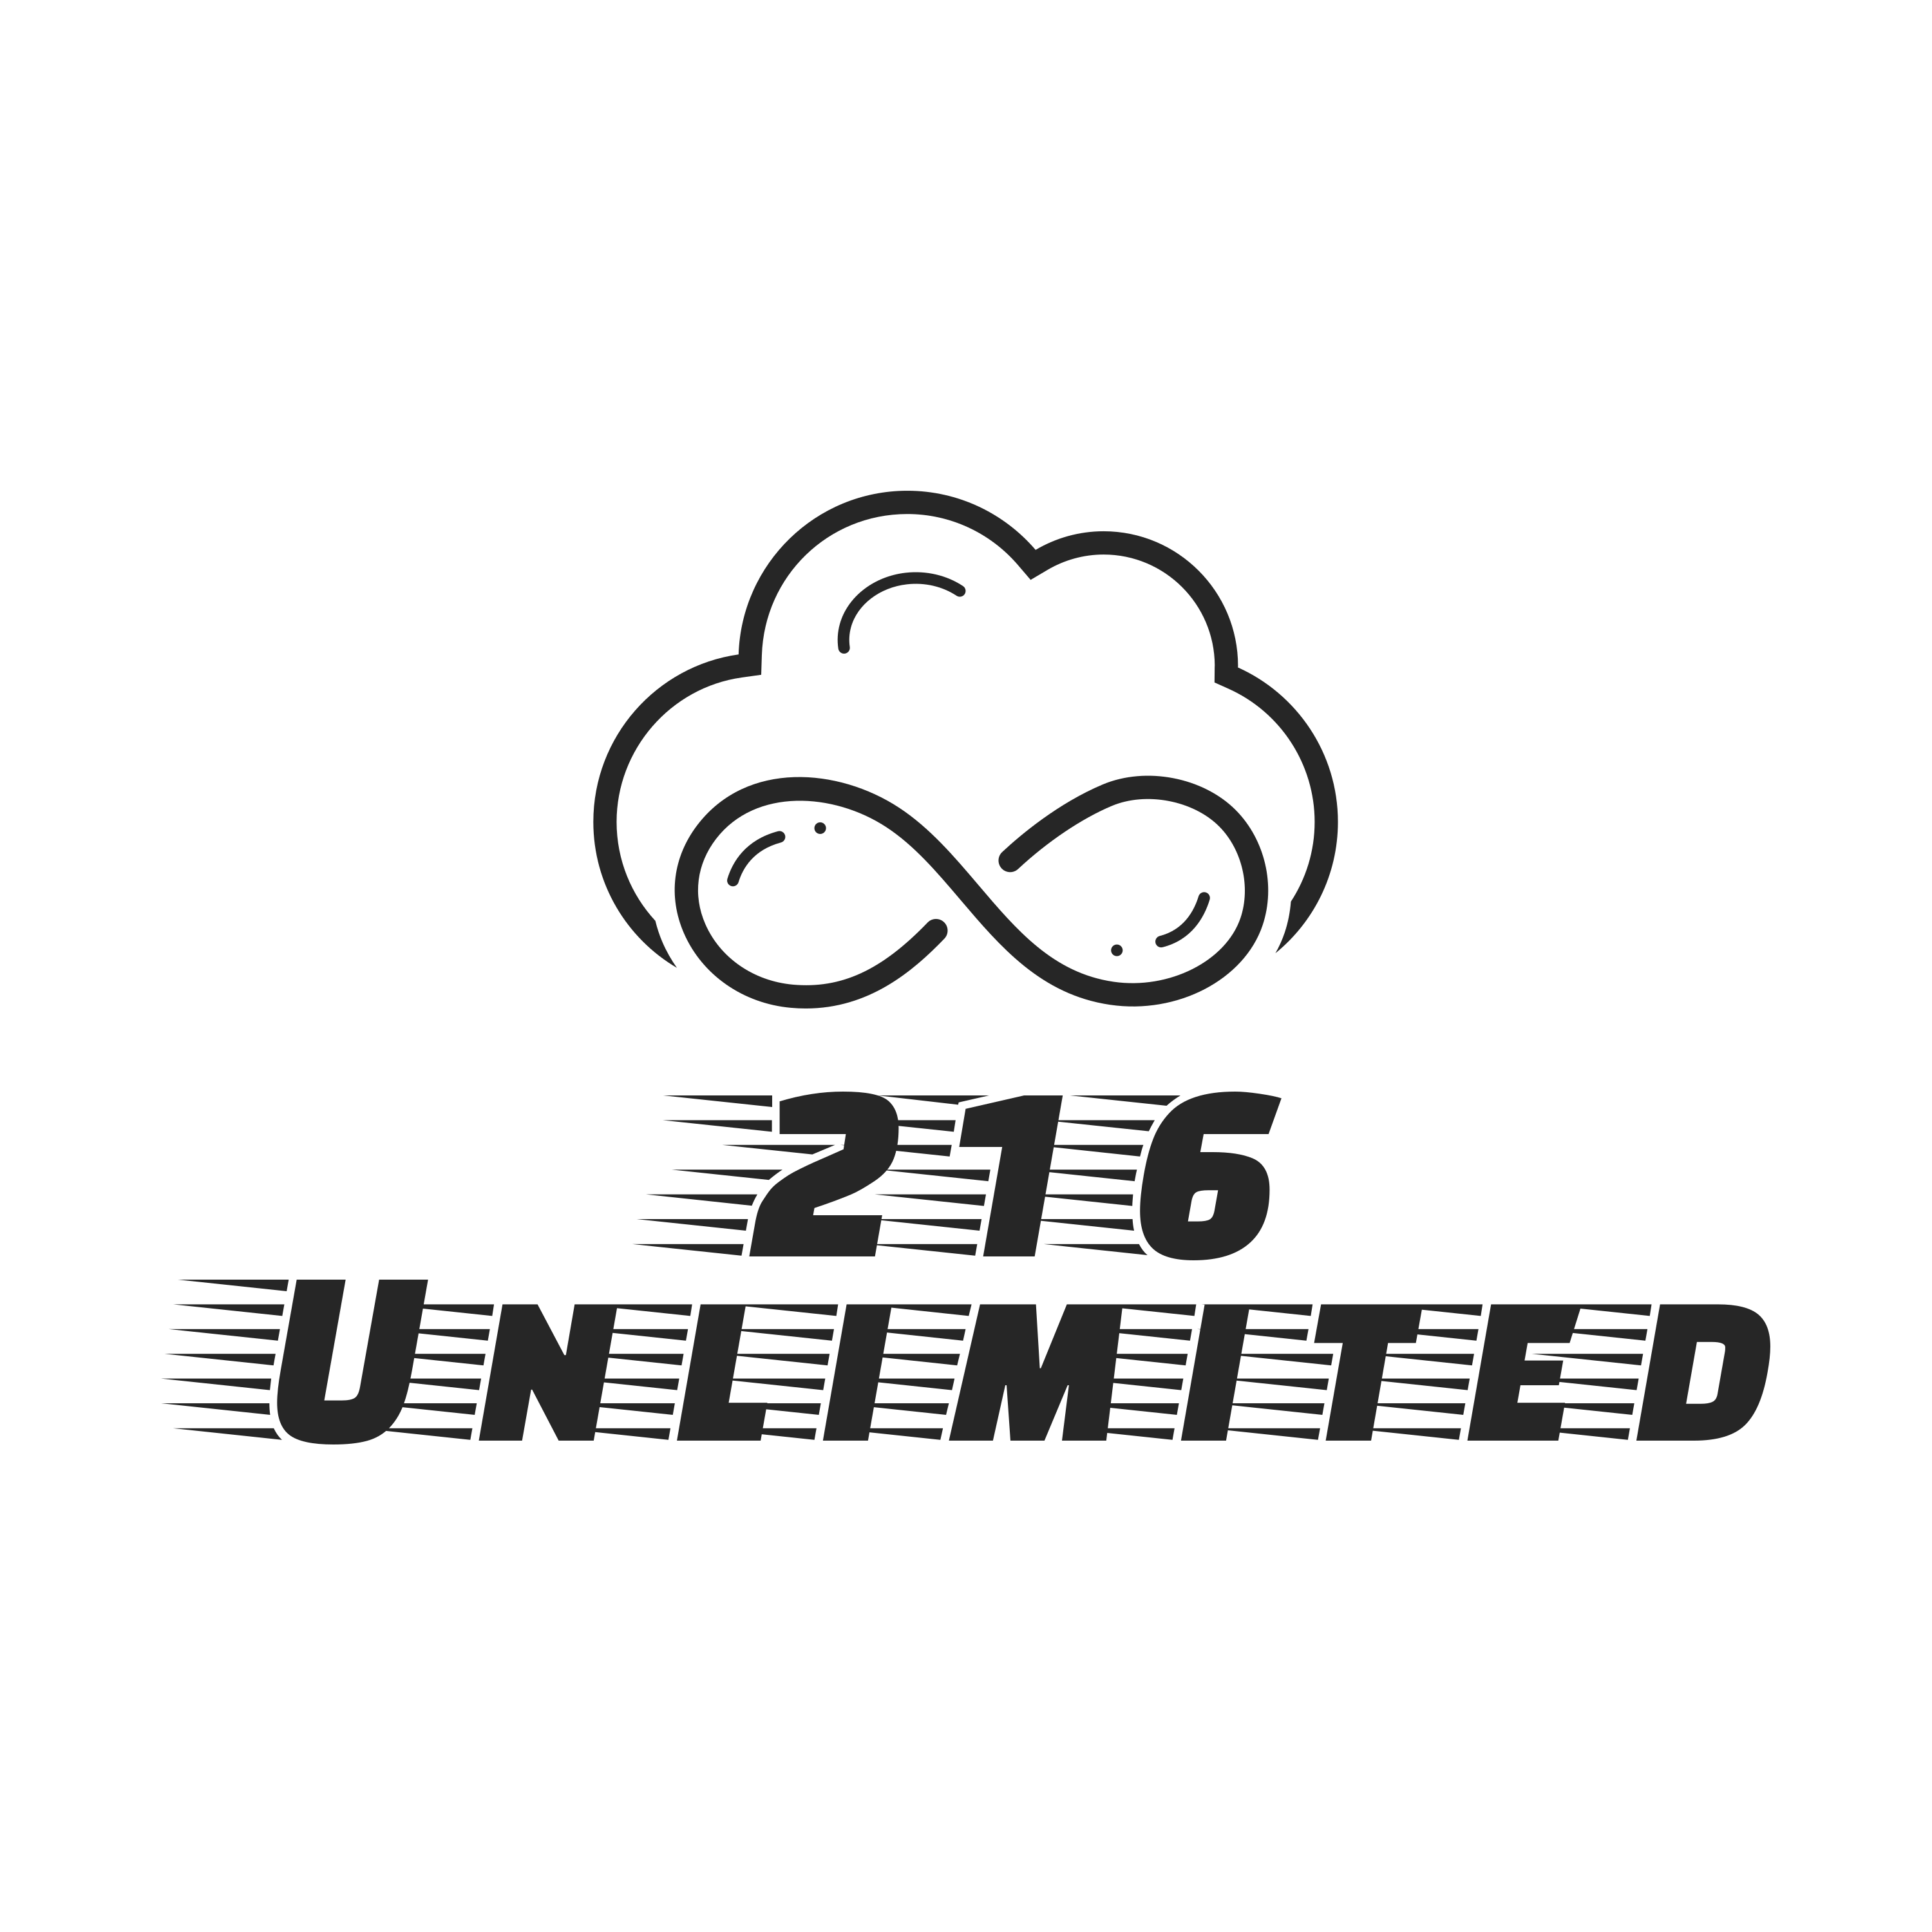 216 Unlimited